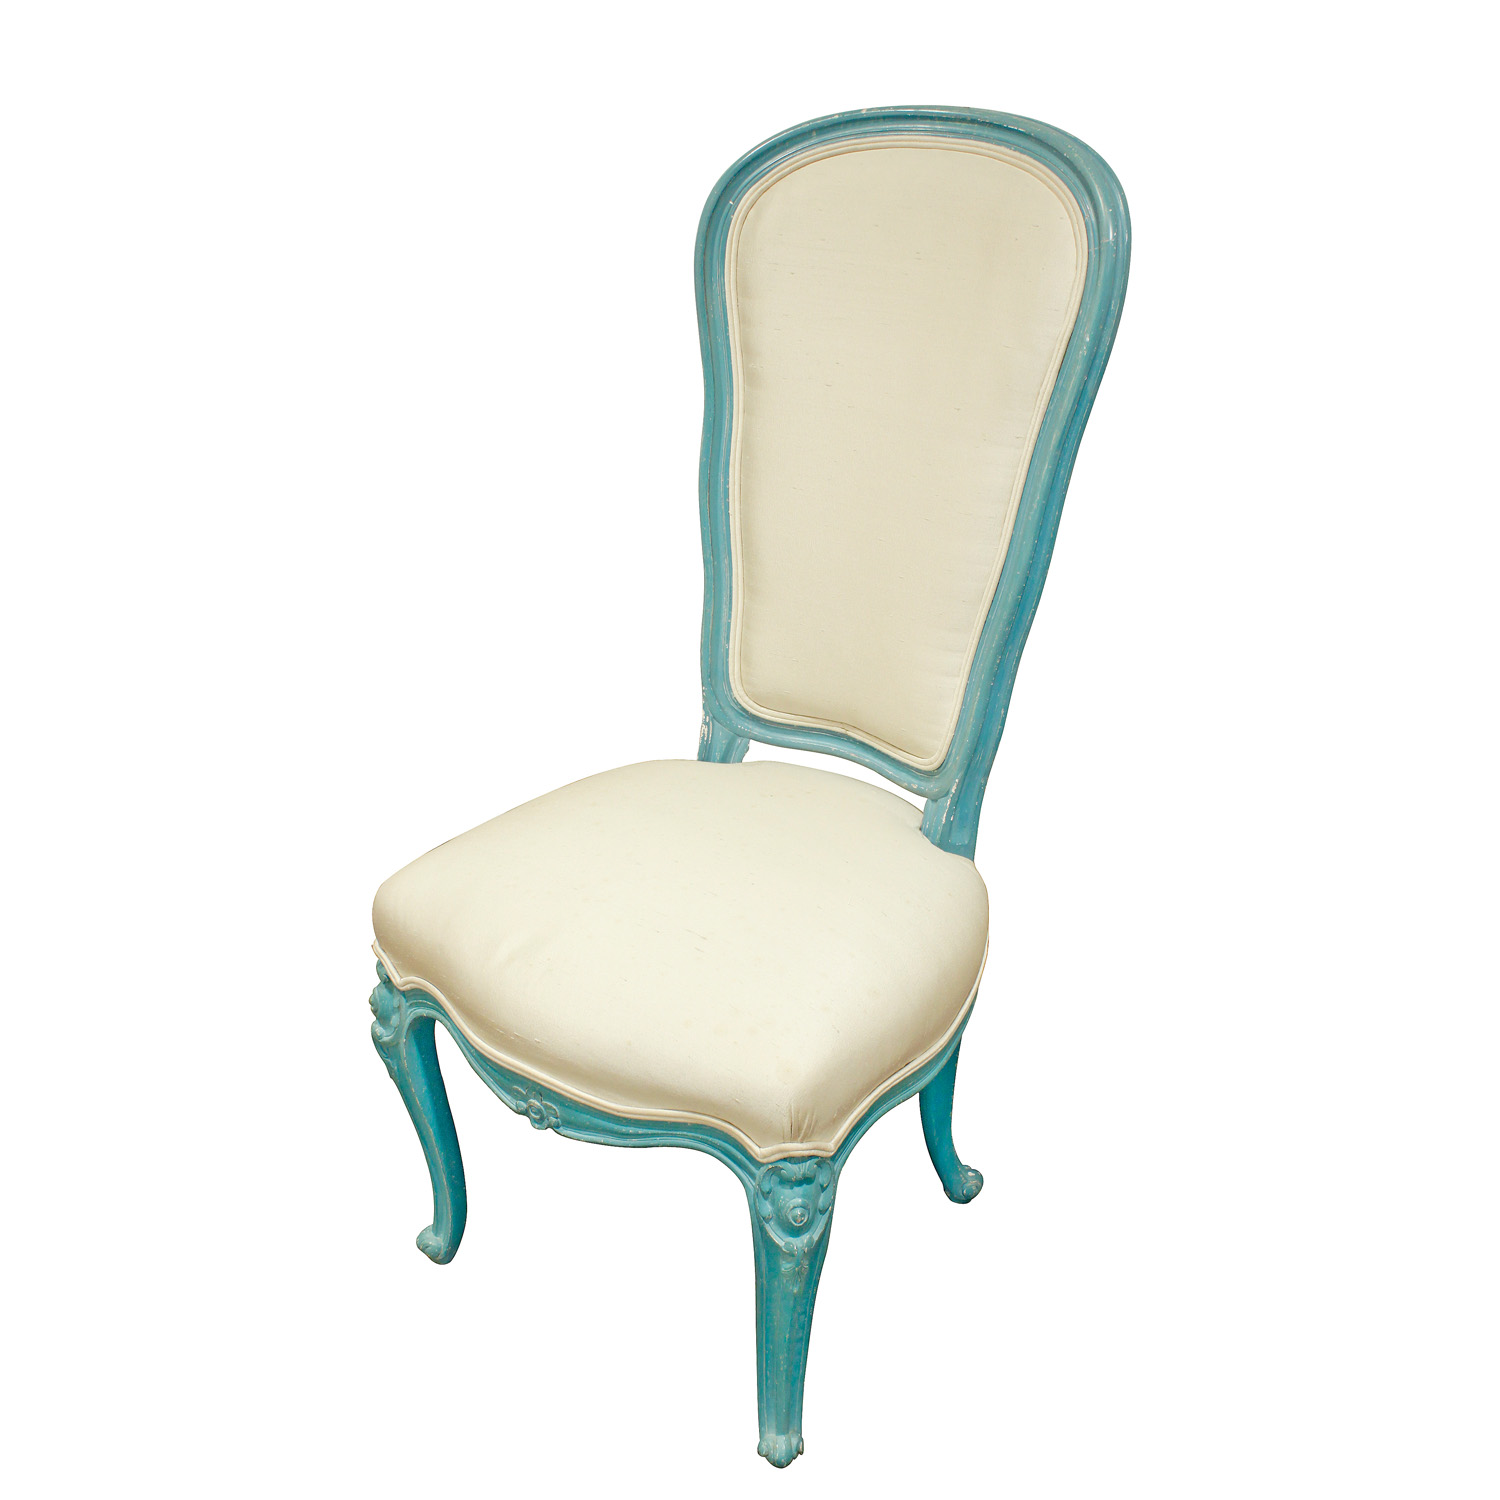 Auffray 120 blue lqr+silk diningchairs178 agl.jpg